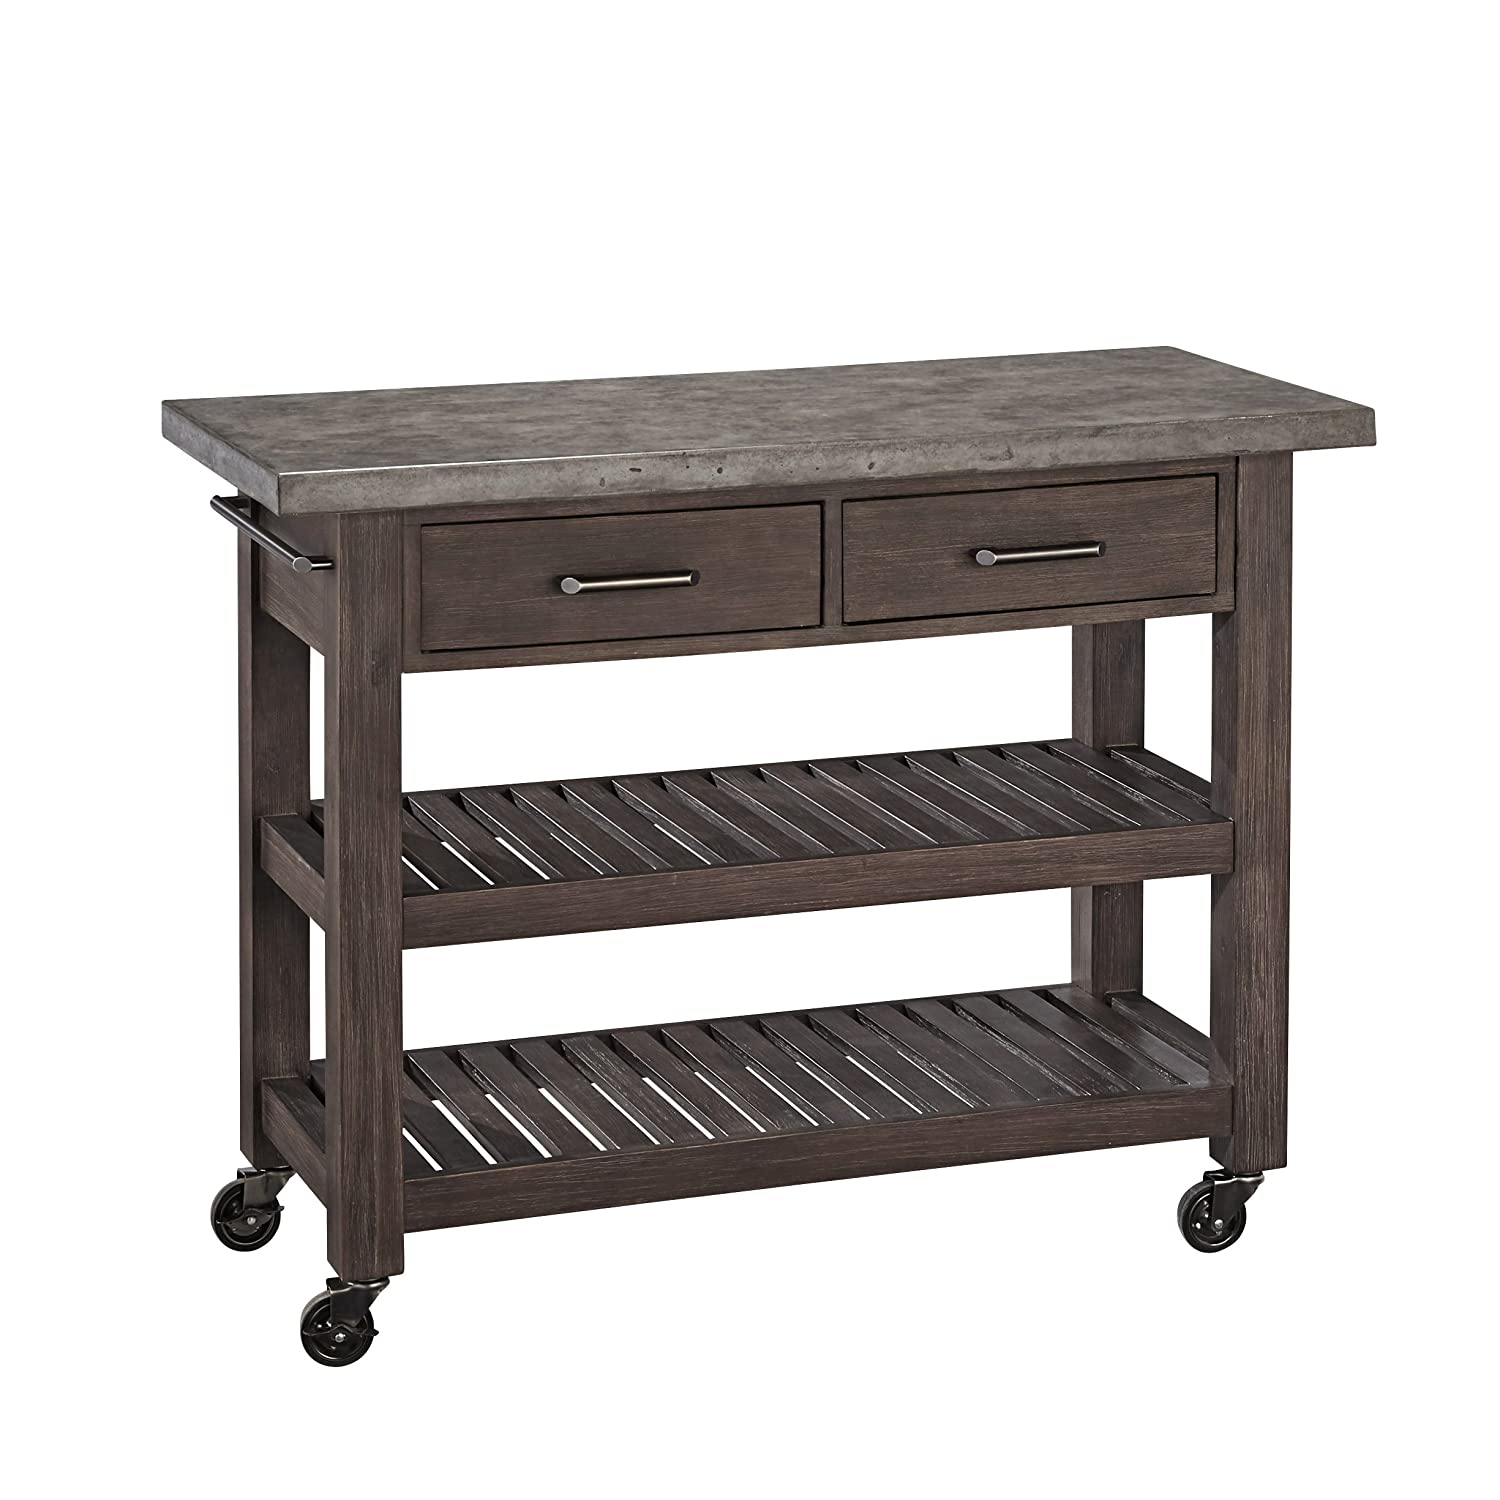 Delicieux Amazon.com   Home Styles Concrete Chic Kitchen Cart   Kitchen Islands U0026  Carts